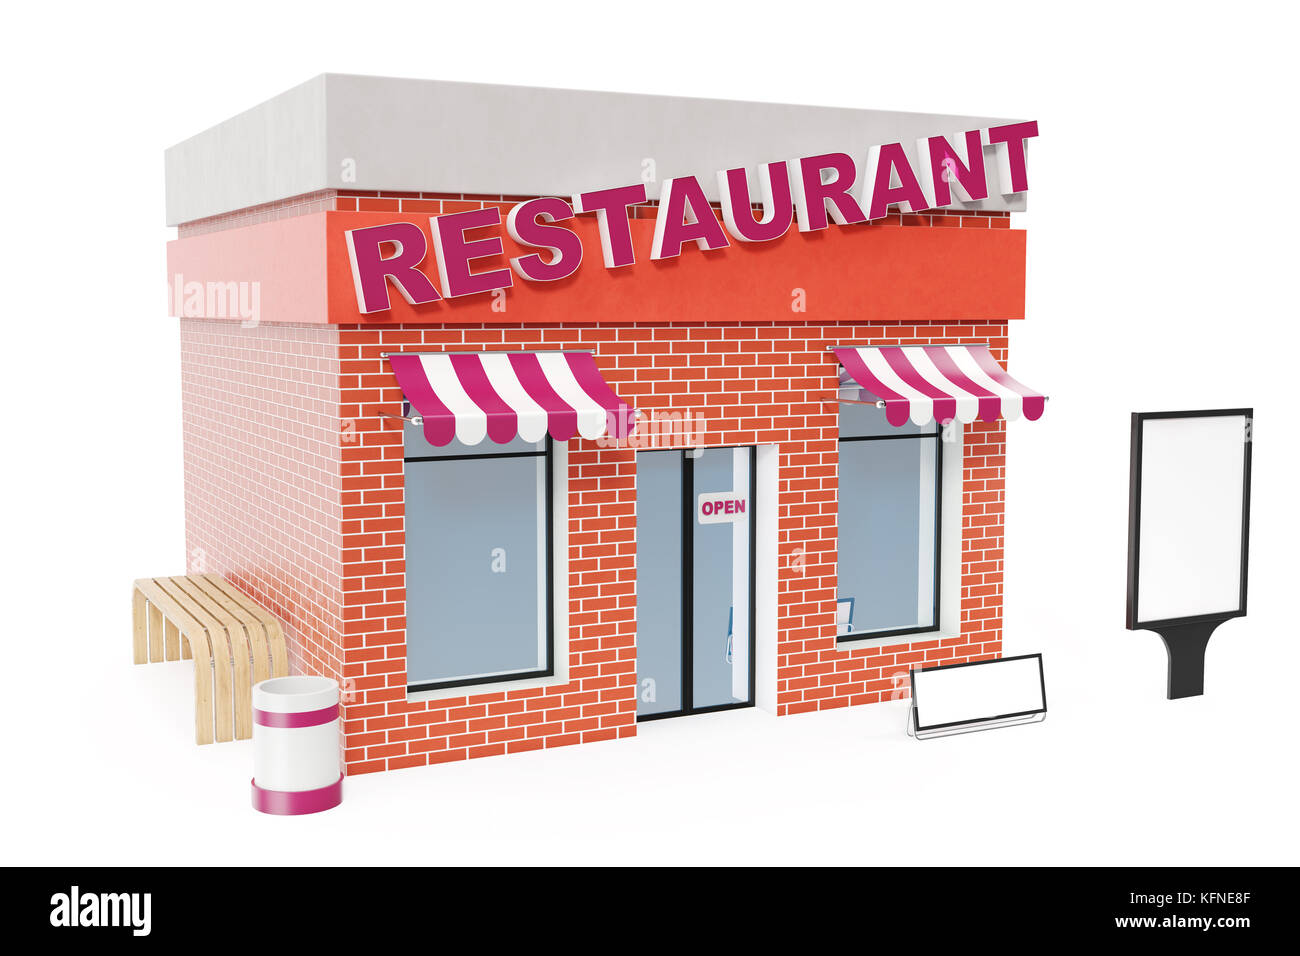 background study for opening a restaurant 23 start-up summary the cost to open the restaurant is $363,000 the majority of the expenses are in furniture fixtures and equipment totally $110,000 the location requires some build-out and.